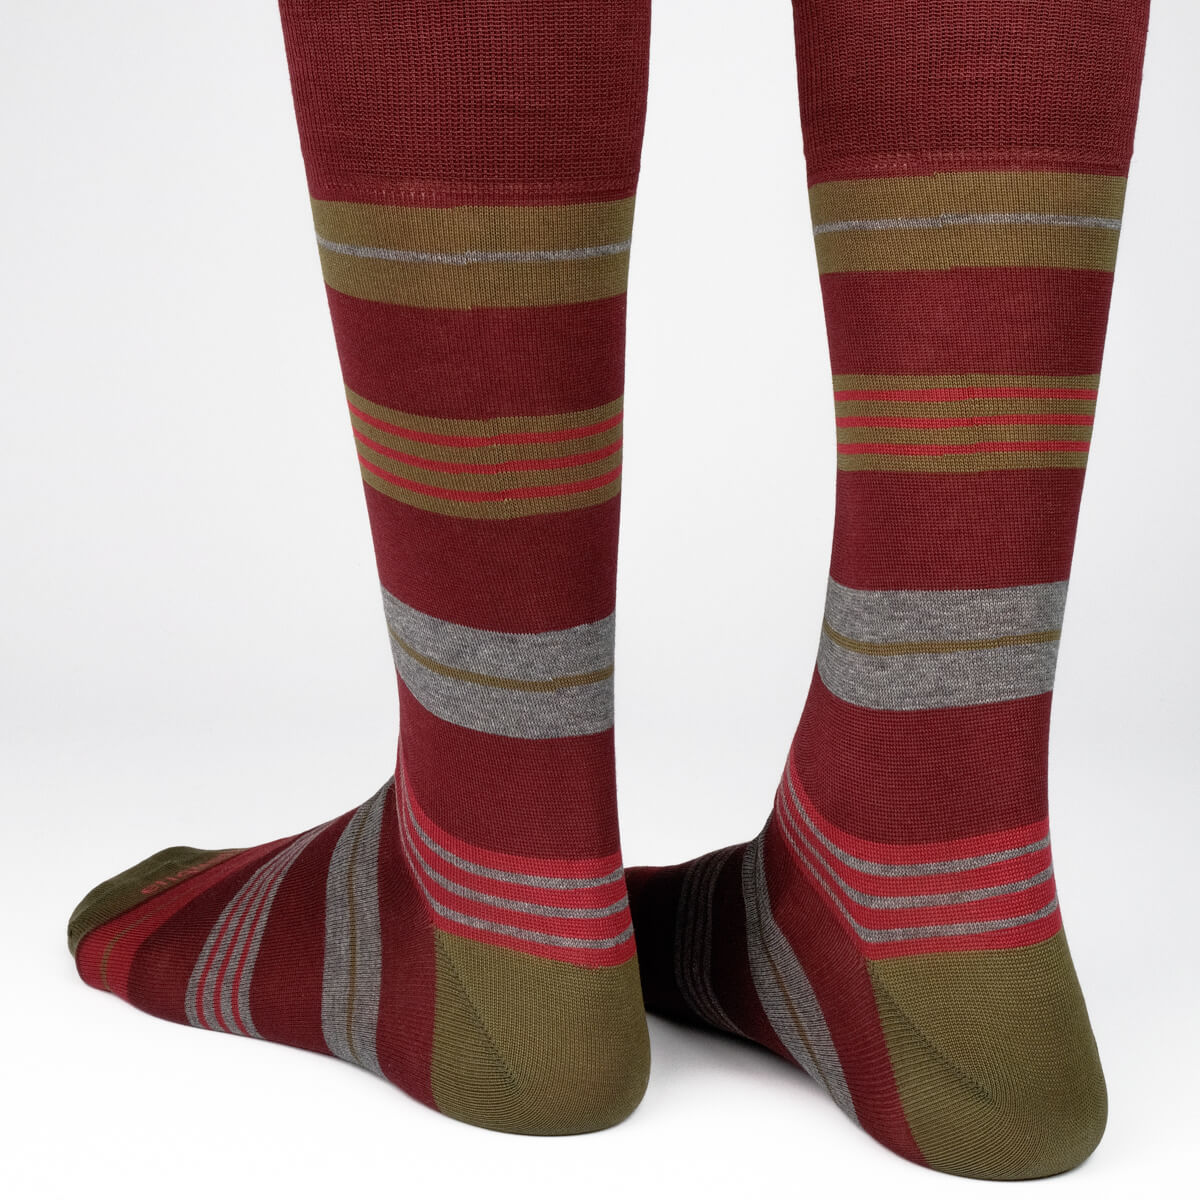 Mens Socks - Amsterdam Stripes Men's Socks - Bordeaux⎪Etiquette Clothiers